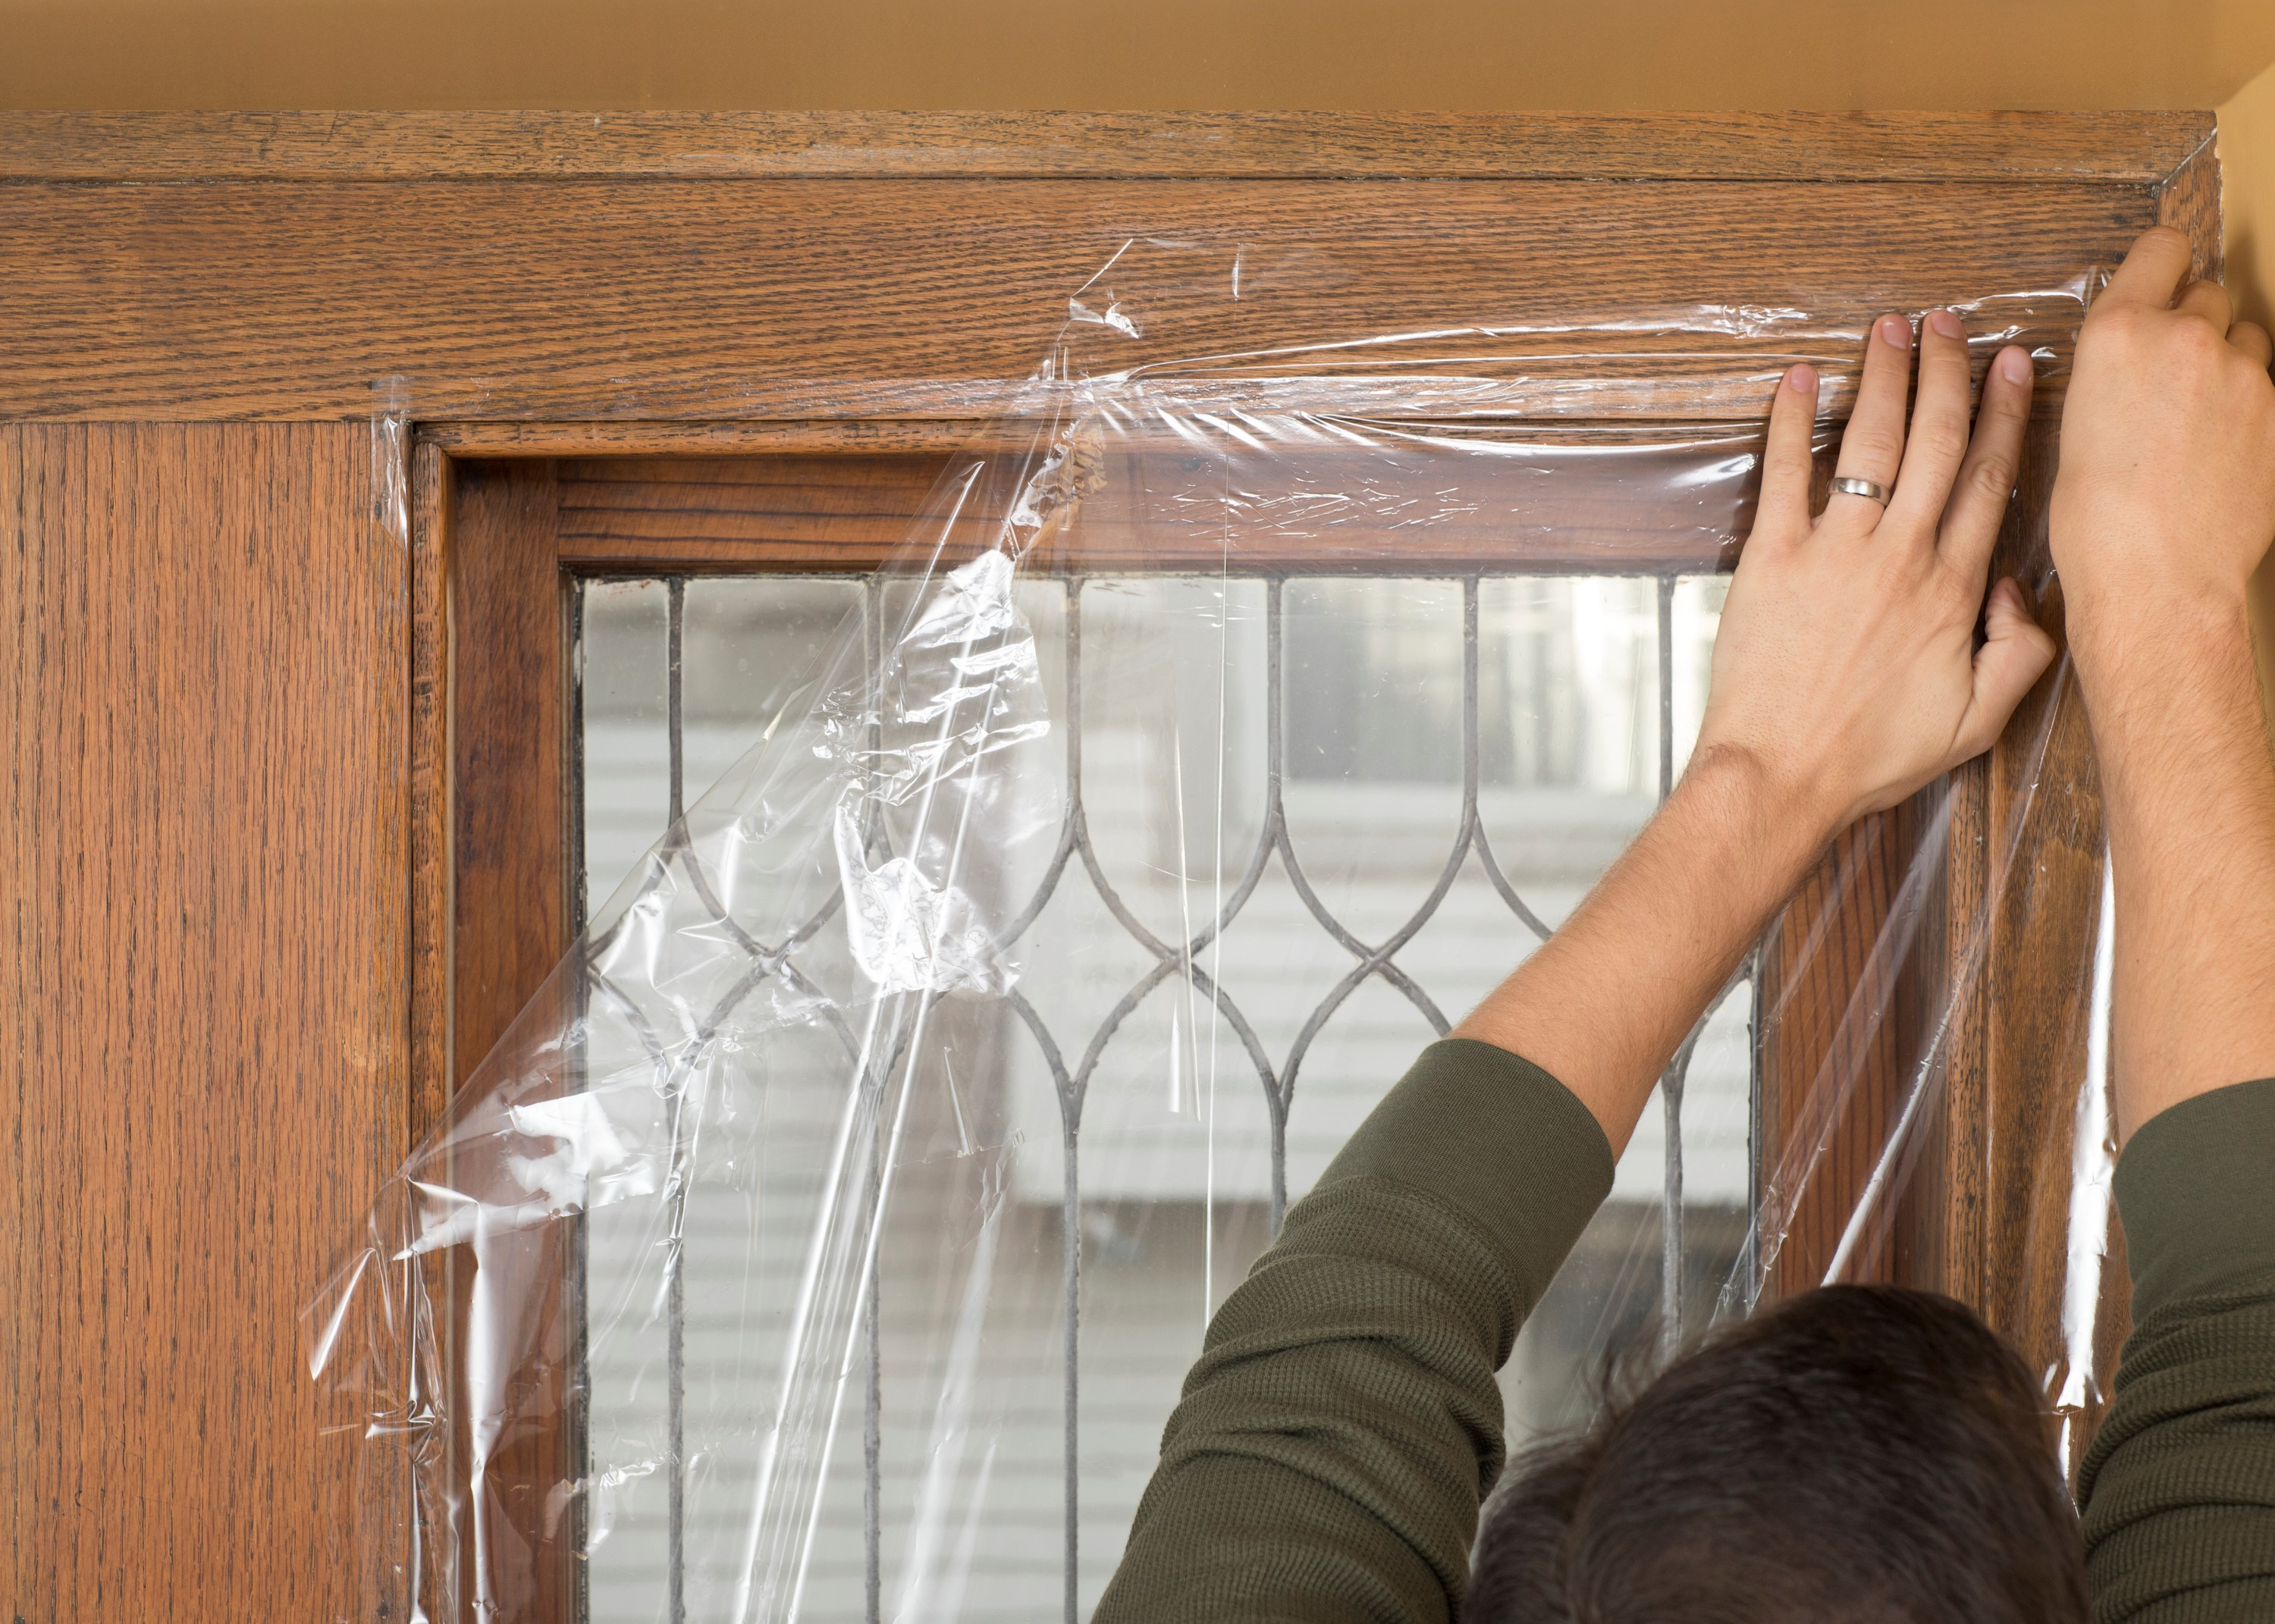 duck brand shrink film window kit for extra large windows or patio